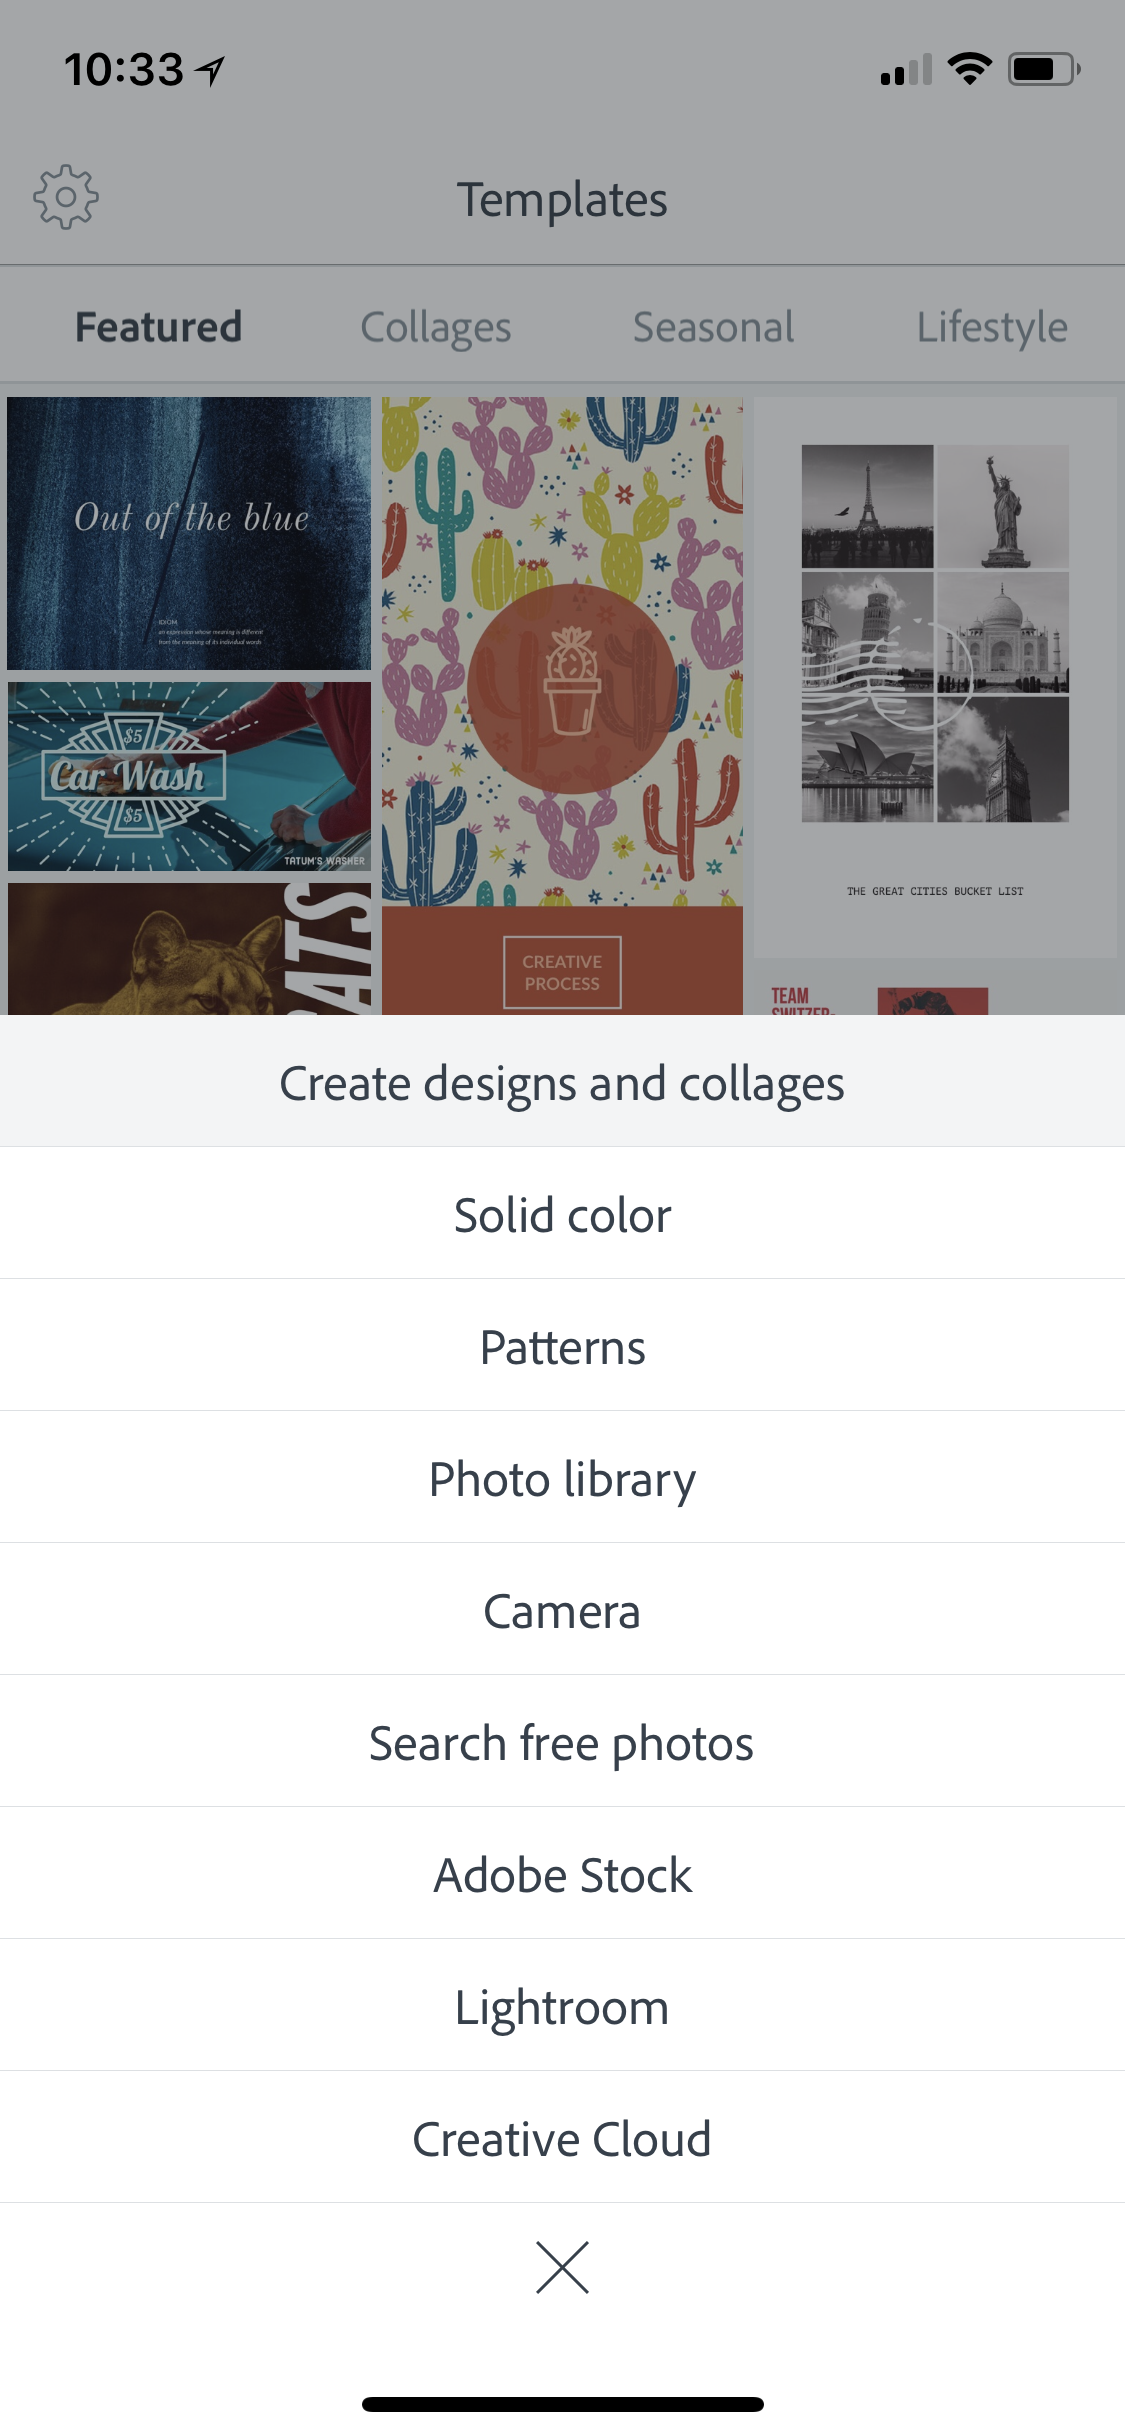 Step 2: - When the options screen pops up, choose 'Solid color.'